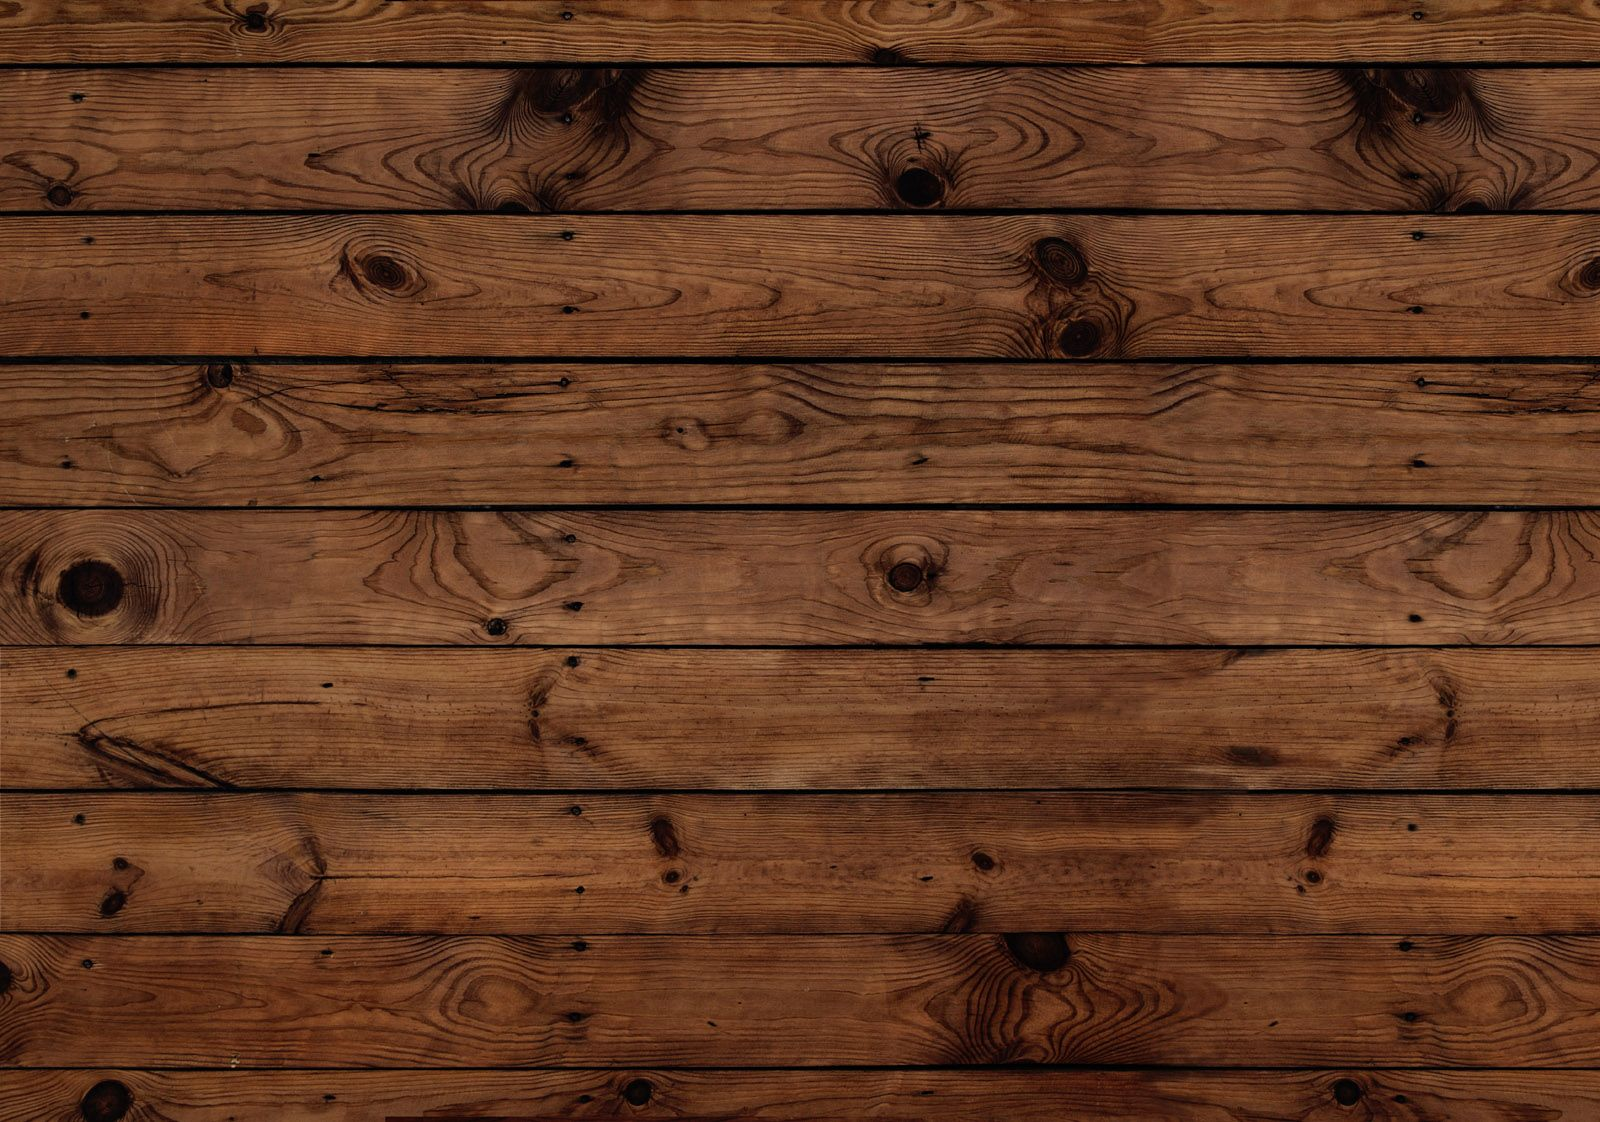 ideas for newborn photo props - Darkwood Plank Floor Prop $41 95